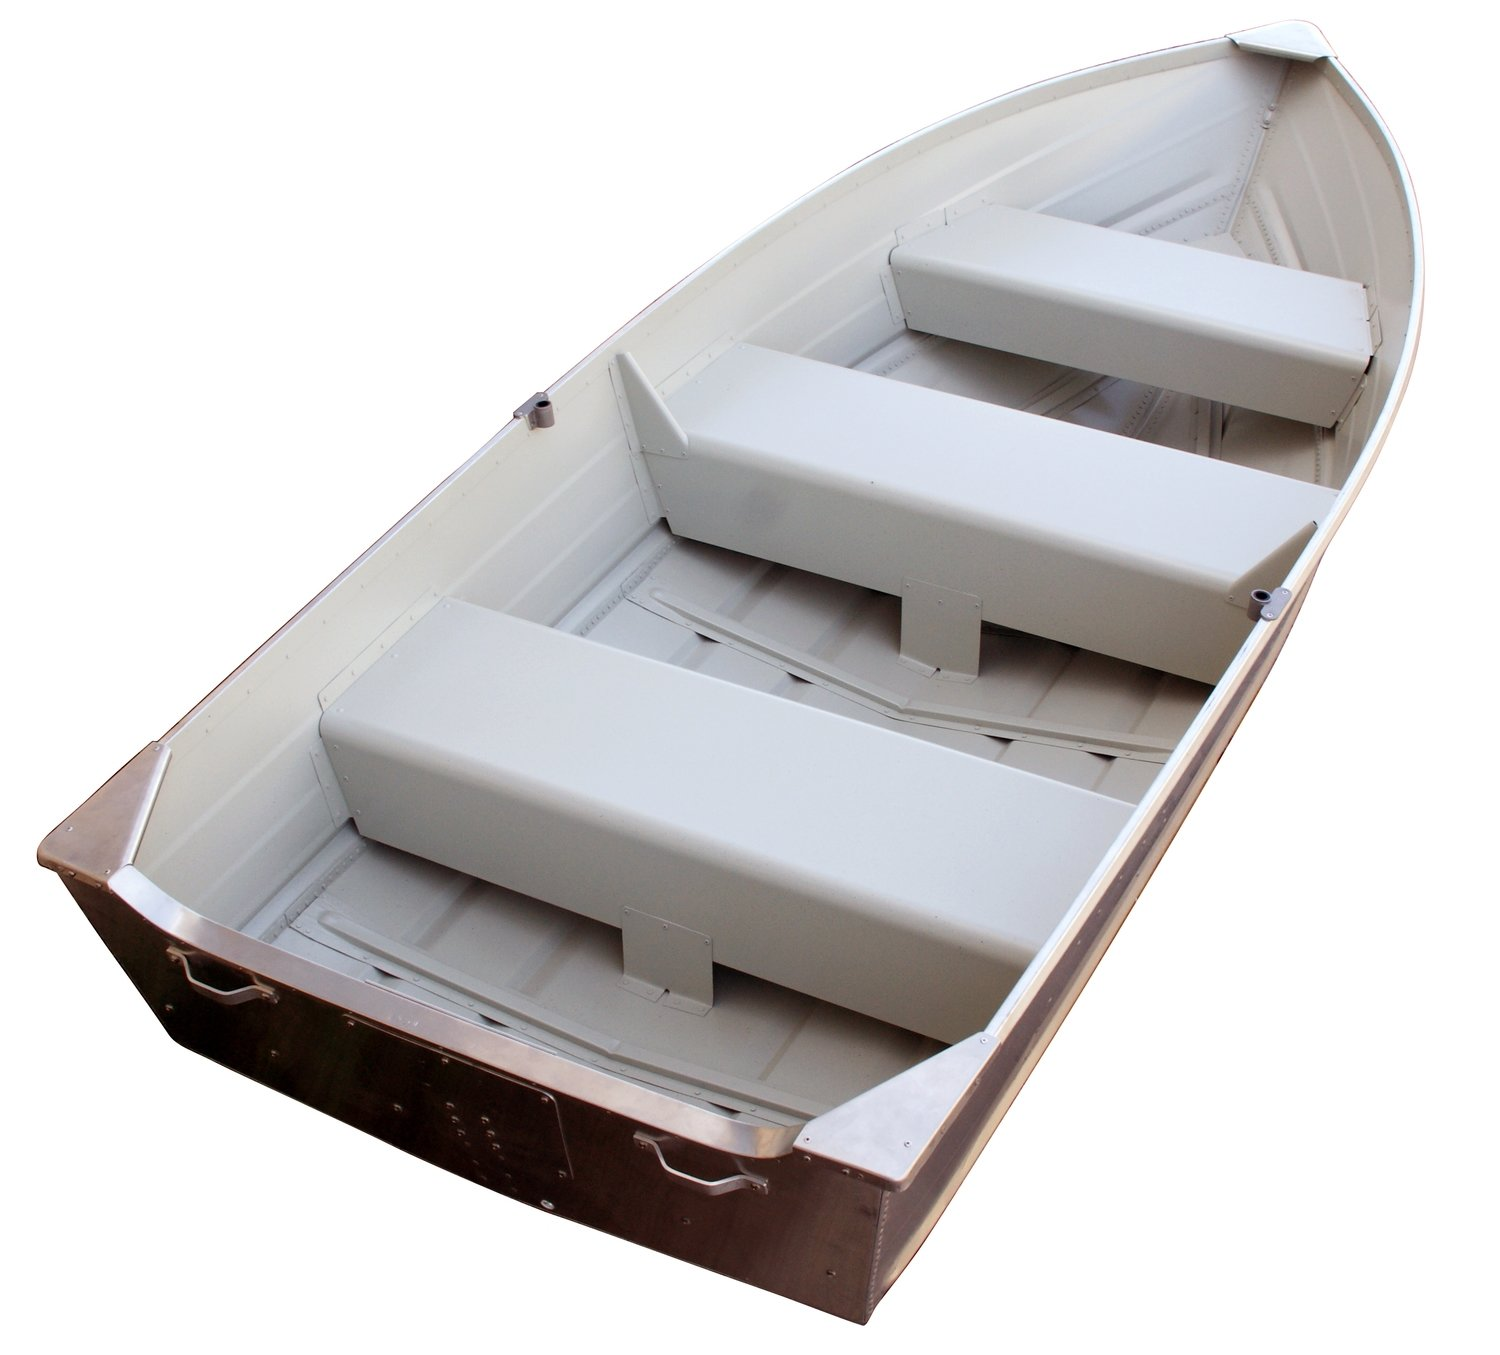 Marine Aluminium 370 S: V Hull Ally Boat ~ Dinghy ~ Fishing ~ Sea CLICK FOR FURTHER PRICING